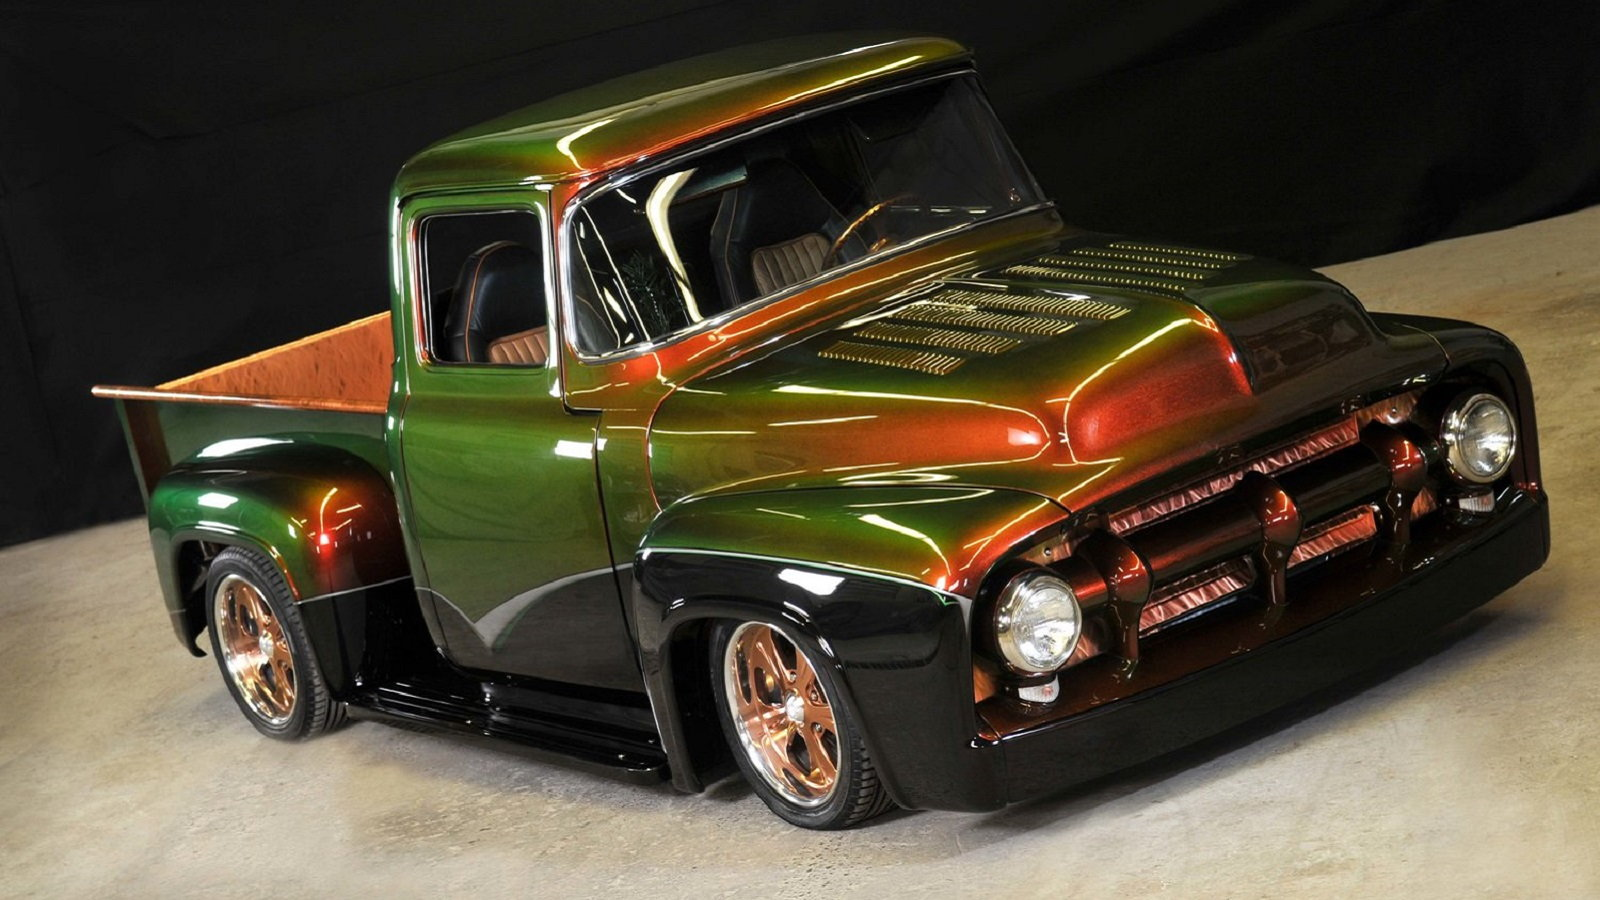 Flawless 1956 Ford F-100 Is a Real TV Star